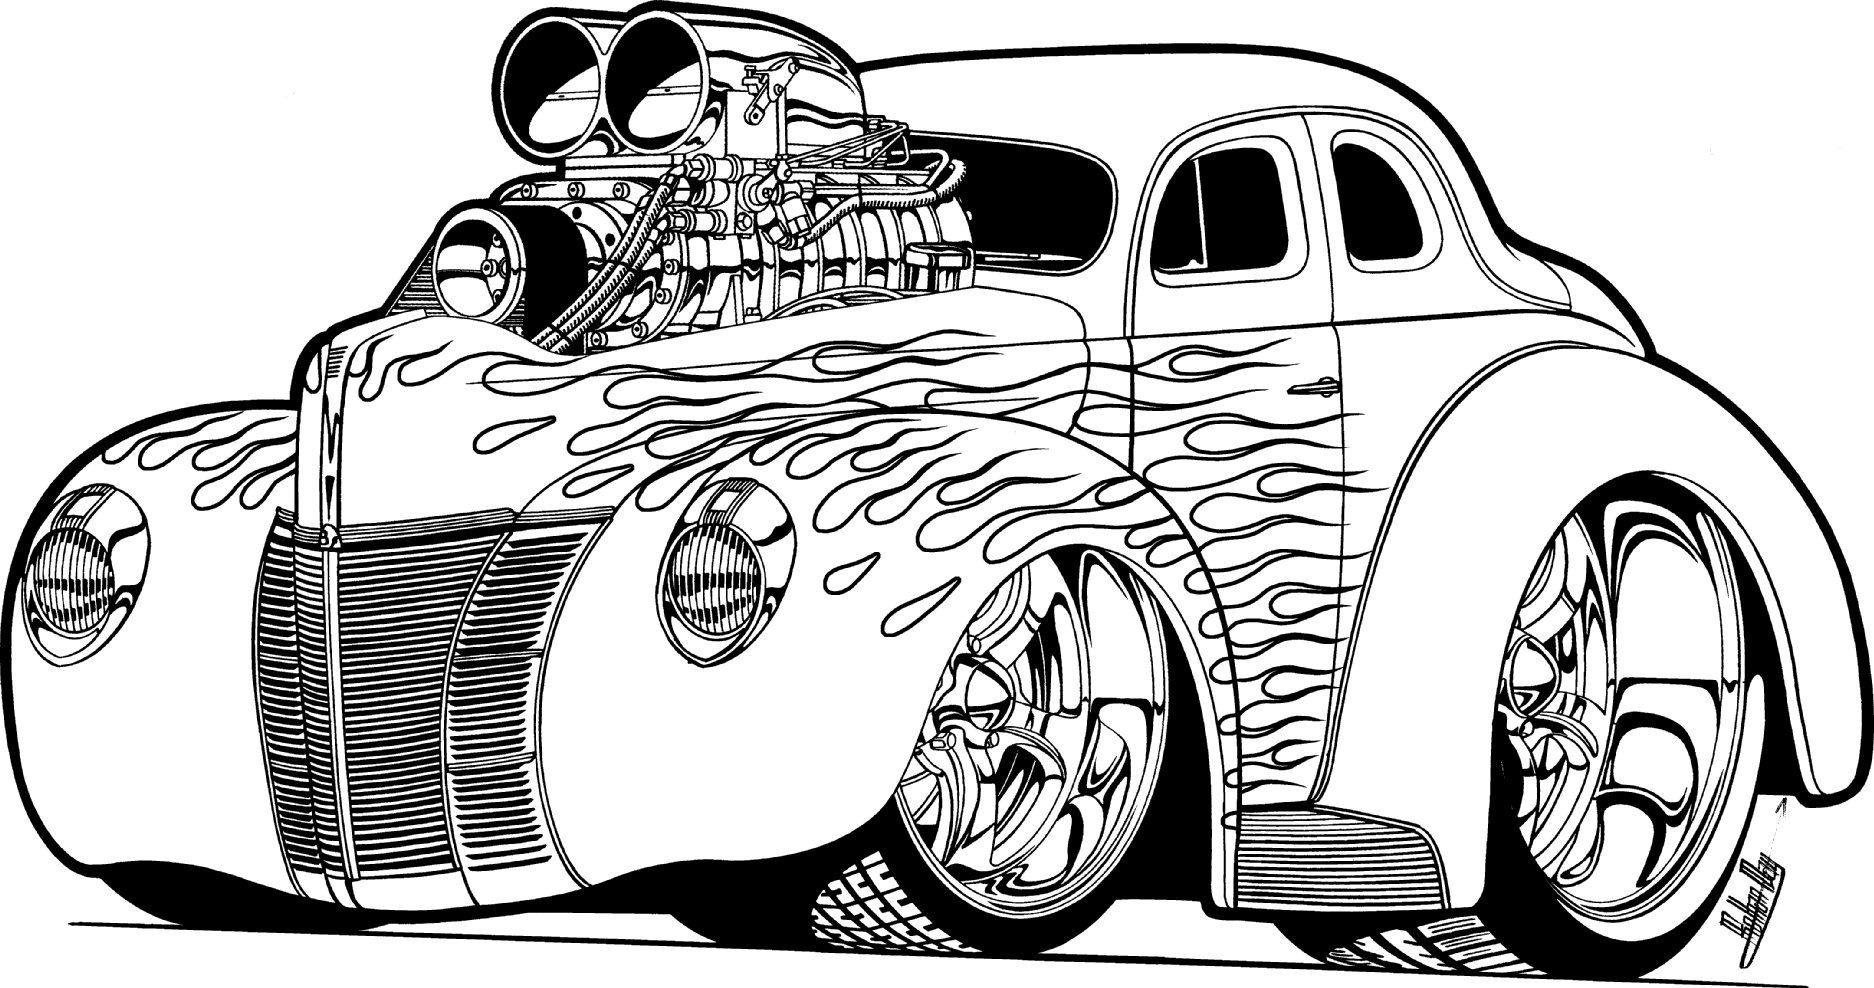 coloring pages of cool cars hummer cars colouring pages cars coloring pages coloring cars of pages cool